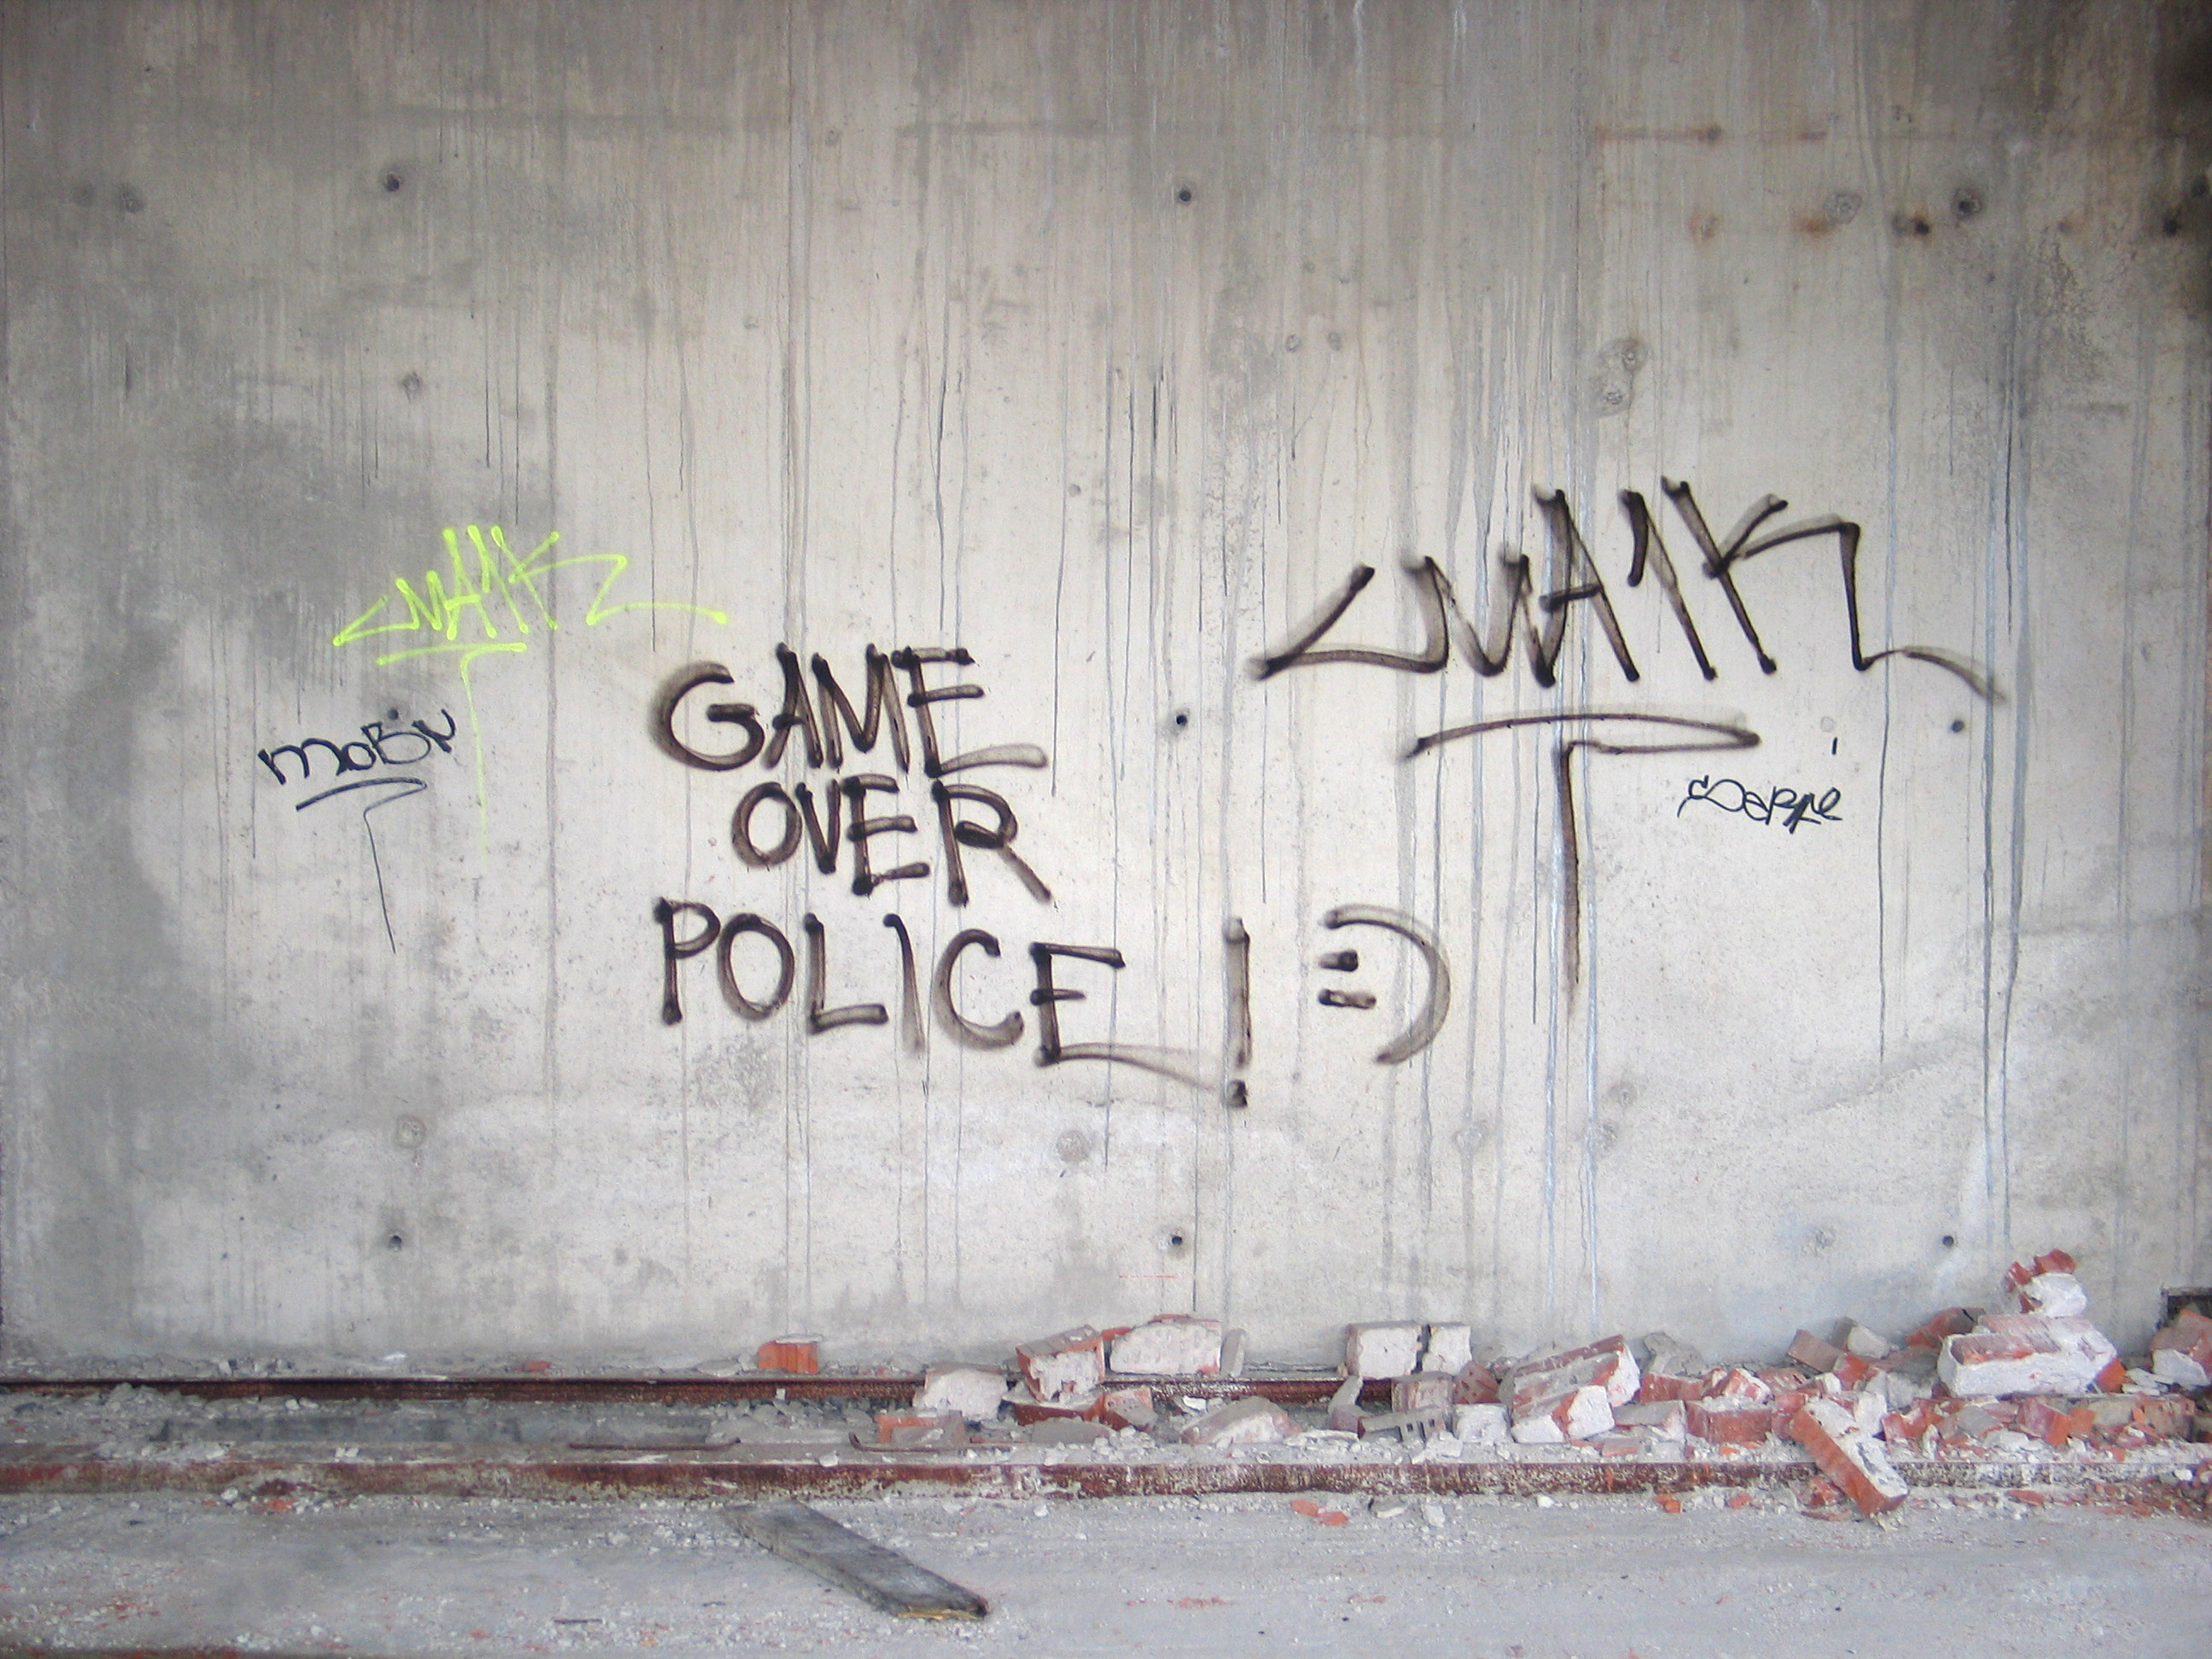 Graffiti wall pictures - Report Stock